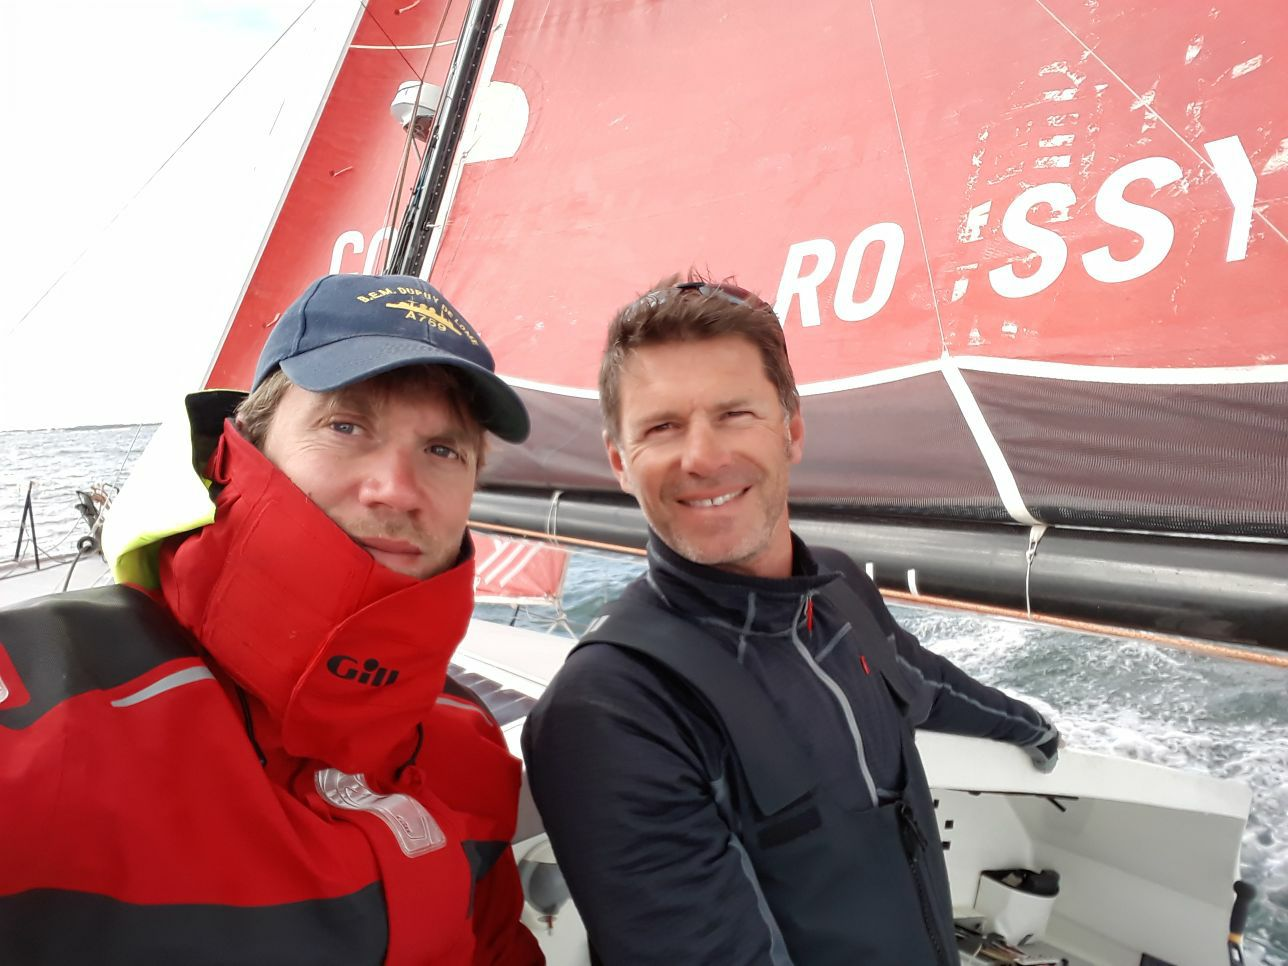 La Normandy Channel Race : grande étape pour Fondation DigestScience